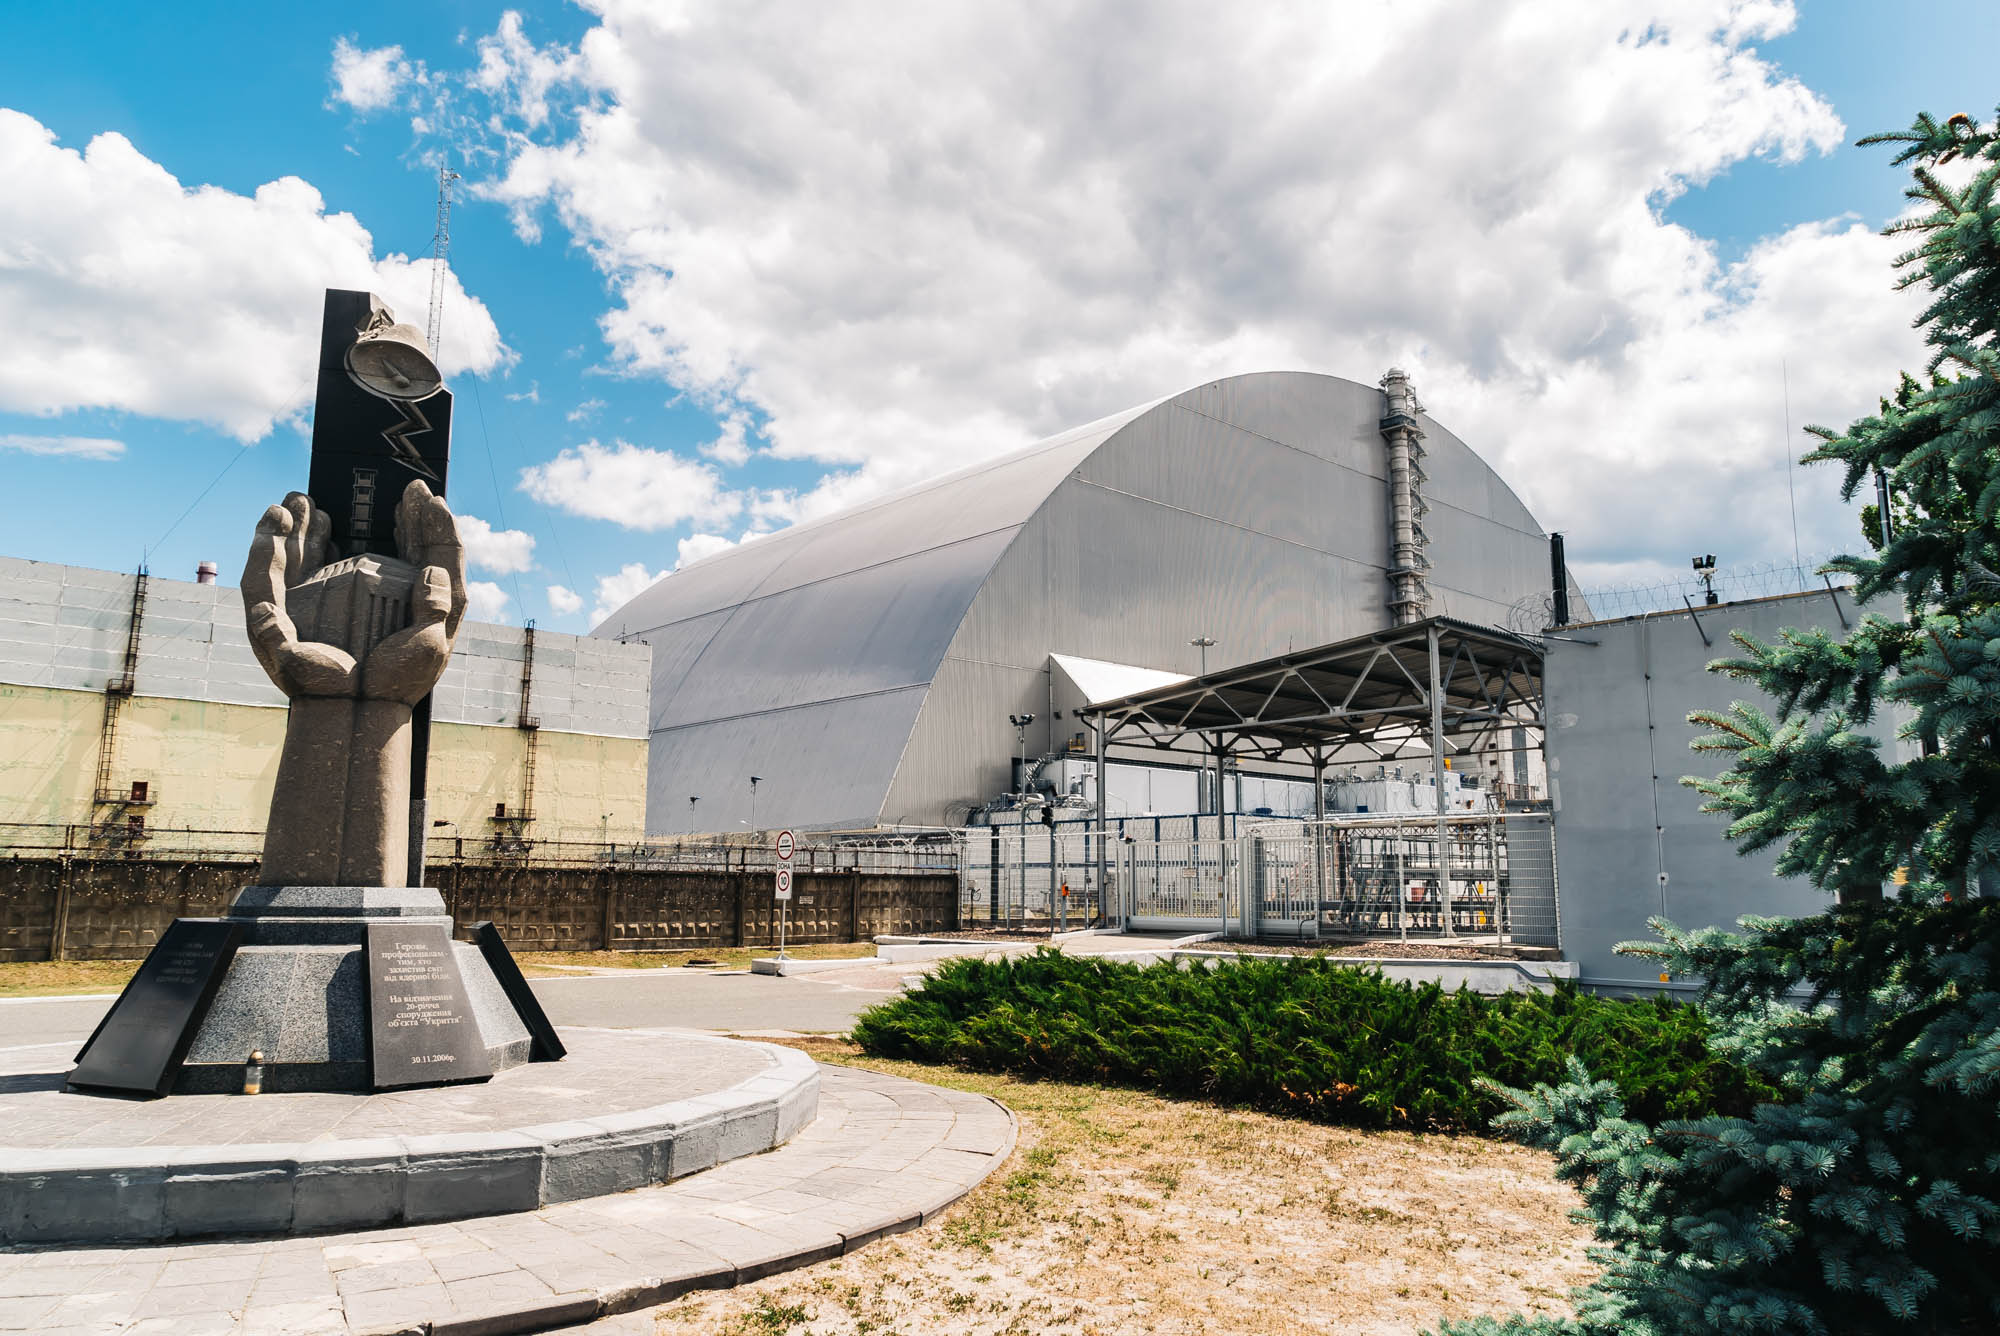 What It's Like To Visit Chernobyl as a Solo Female Traveler